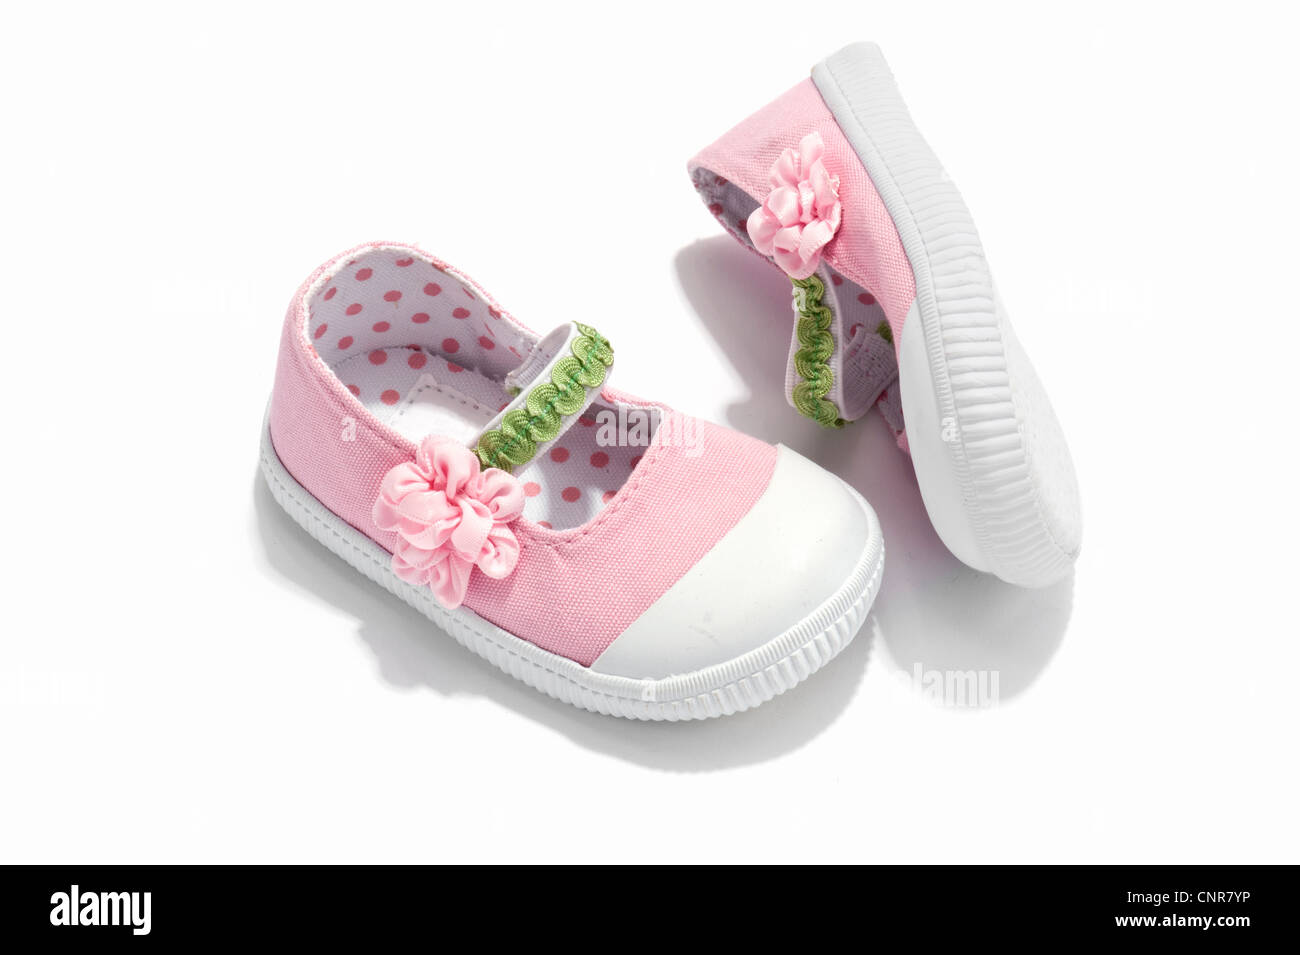 a pair of pink baby shoes stock photo royalty free image